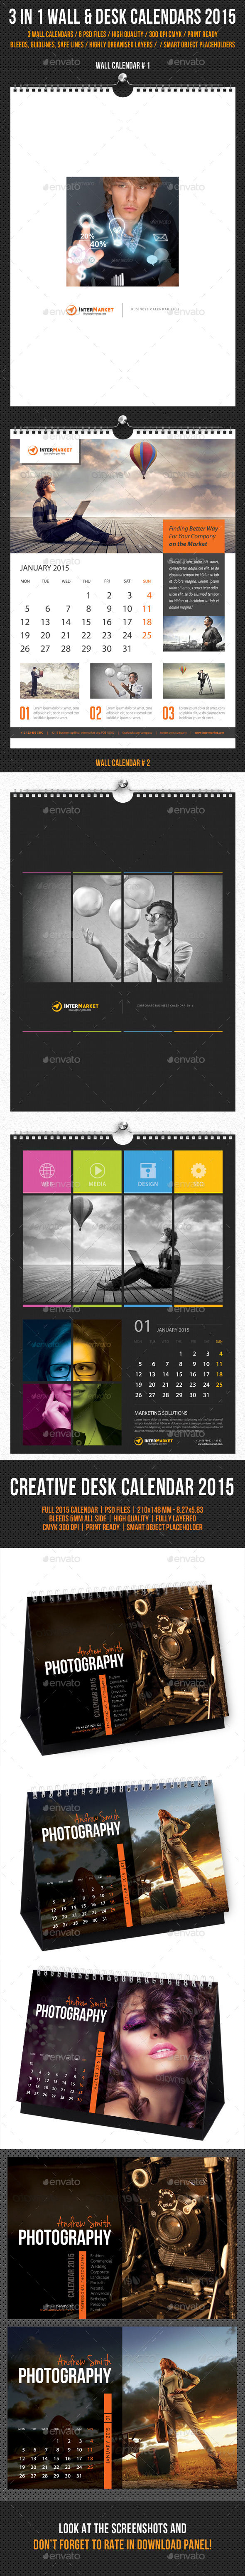 GraphicRiver Wall and Desk Calendar 2015 Bundle 9975304